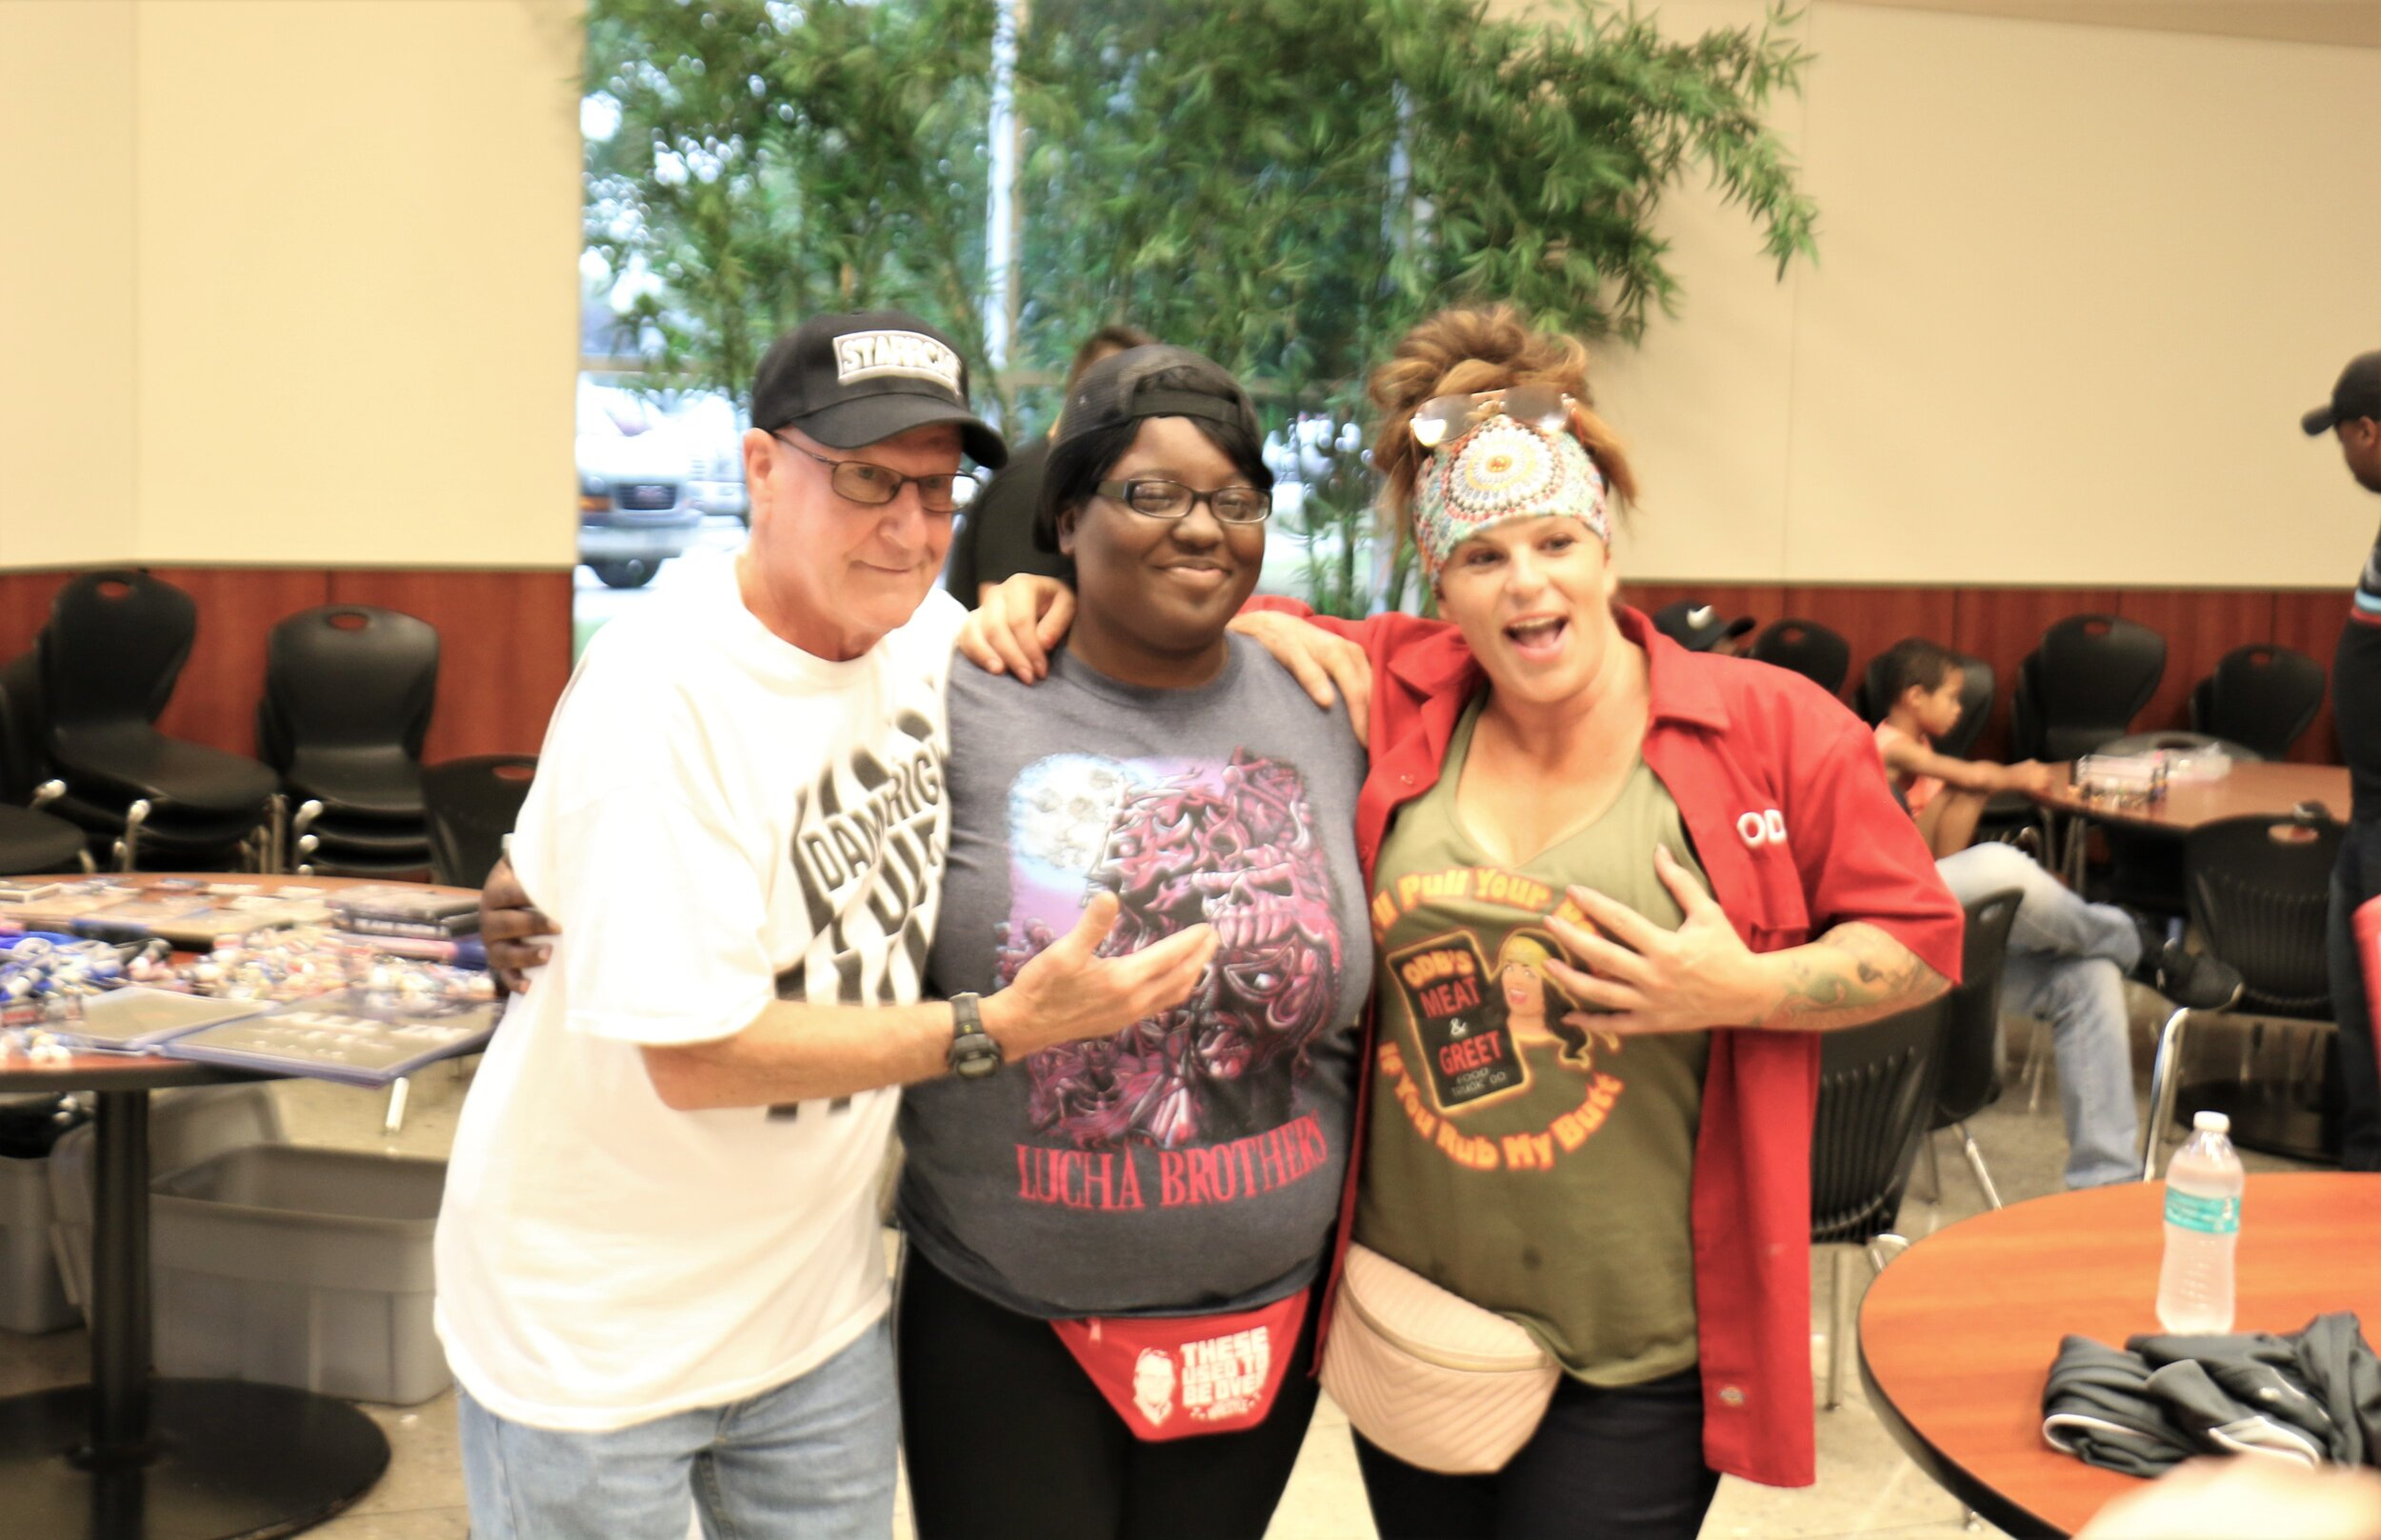 Earl Hebner, left, and ODB, right, pose for a picture for a fan at the Warrior Wrestling 6 VIP Fan Fest.